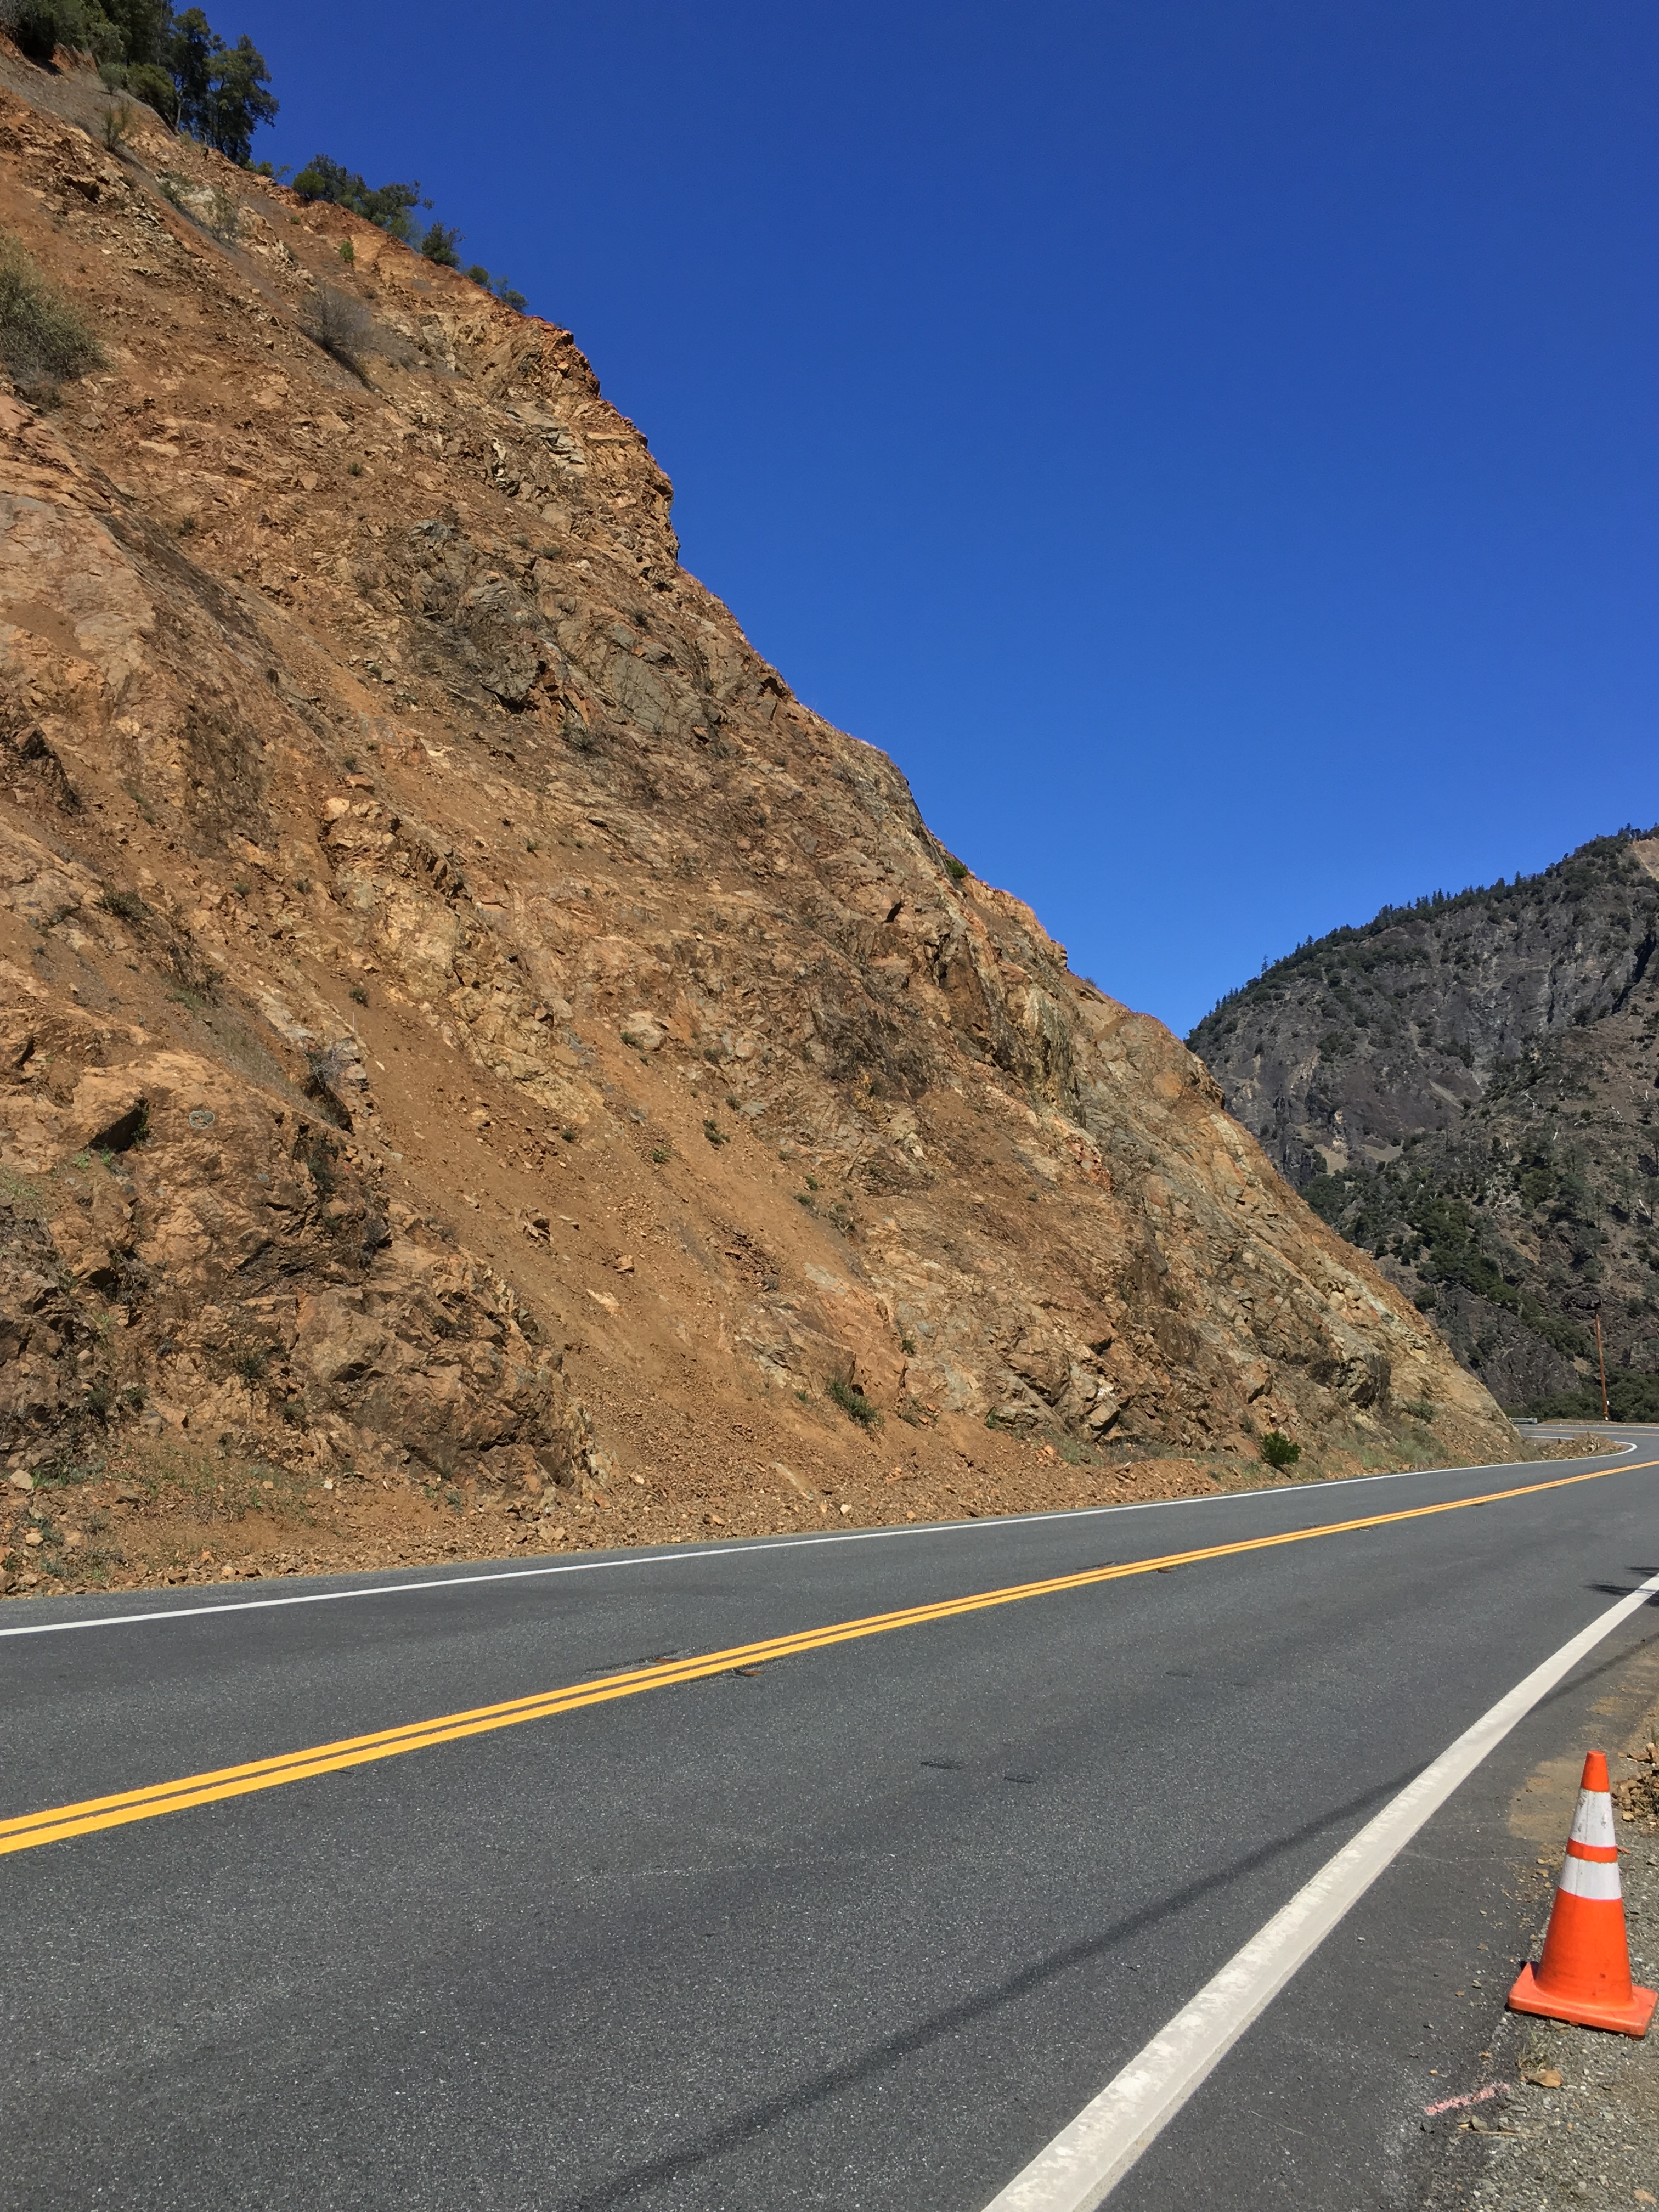 Picture of Highway 299, just east of Burnt Ranch, with large rock slope in the background